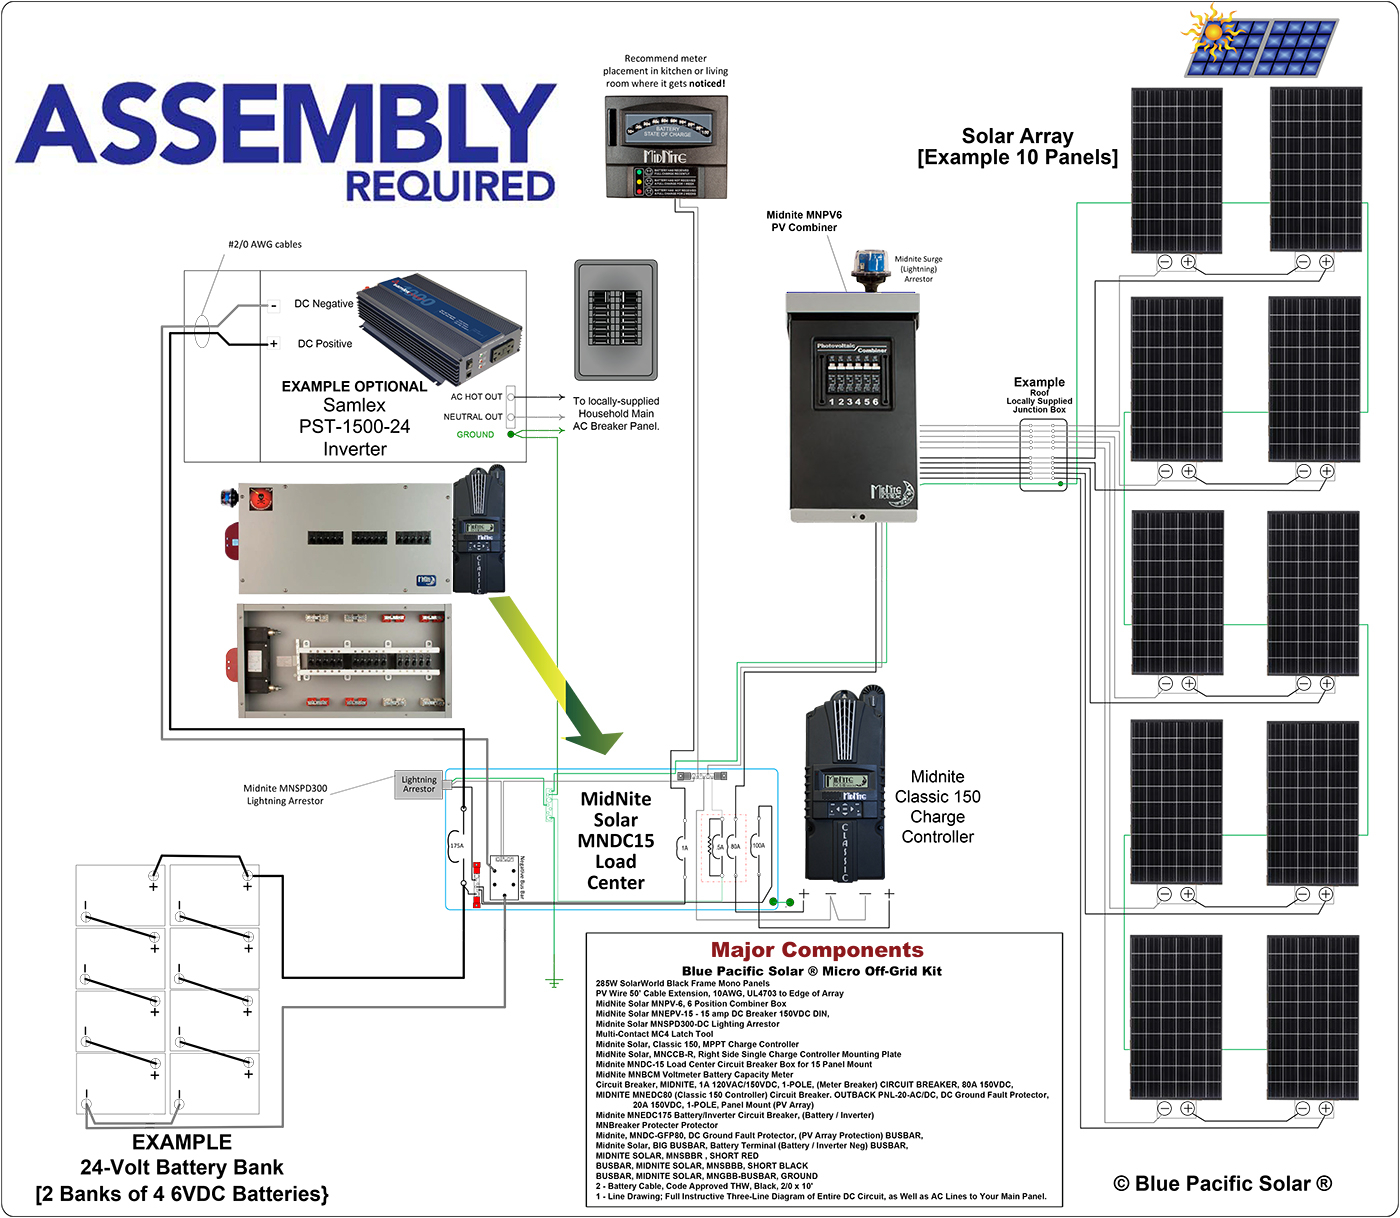 solar combiner box wiring diagram Download-Solar biner Box Wiring Diagram Elegant Midnite solar F Grid 3 4kw Micro Blue Pacific solar 2-p